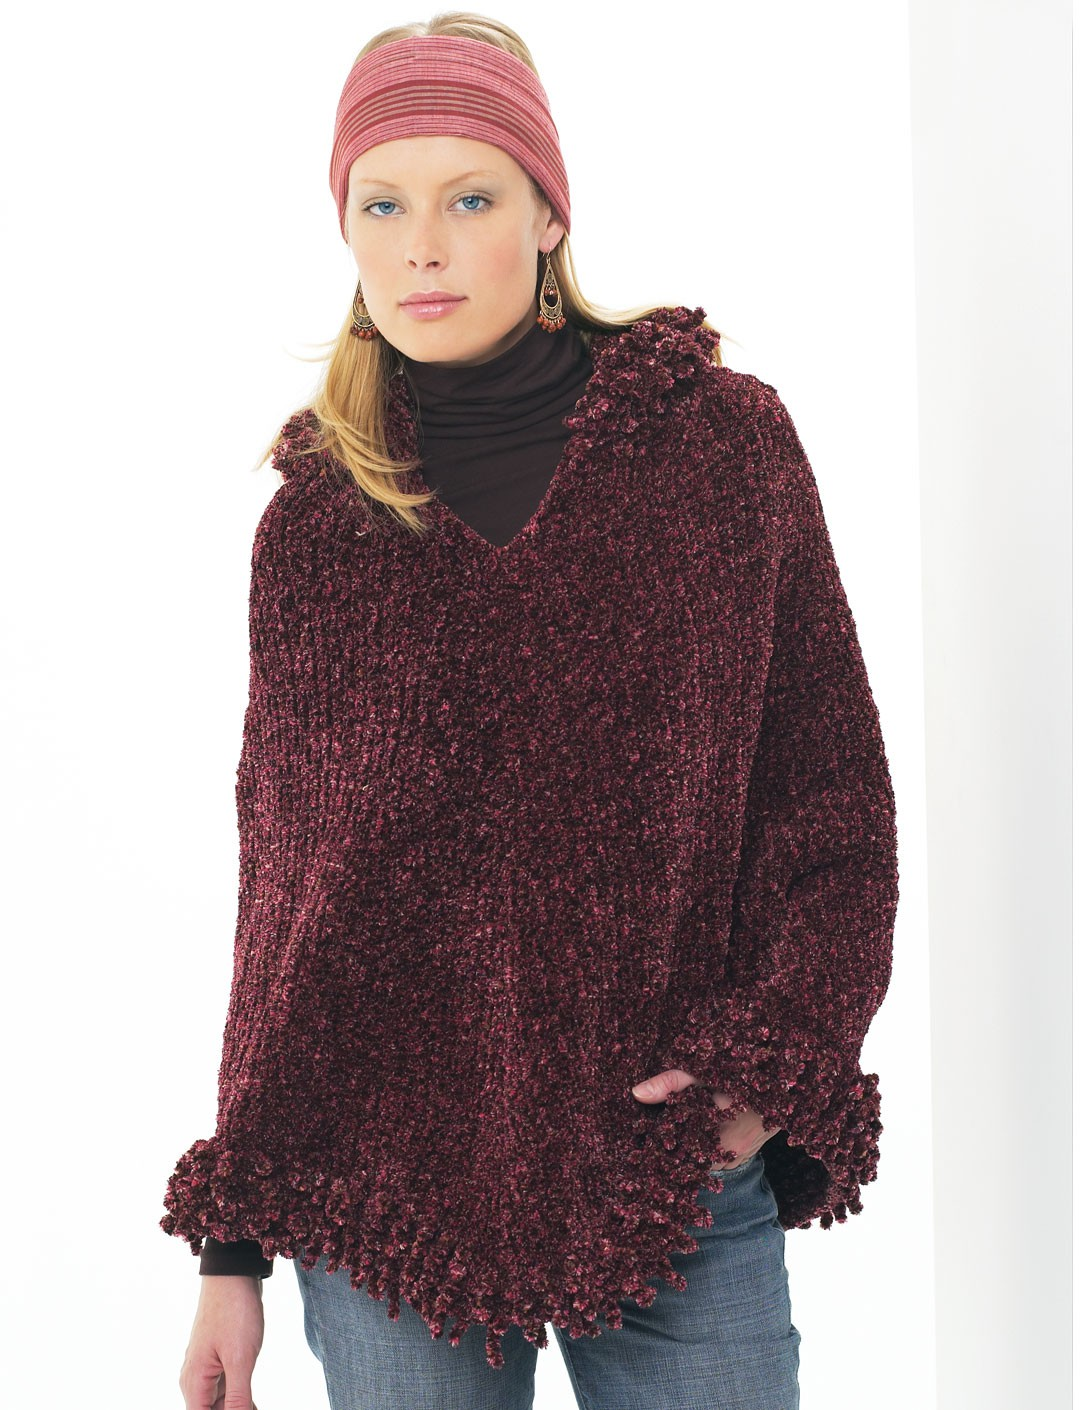 Free Crochet Pattern For Hooded Cape : Hooded Poncho - Patterns Yarnspirations